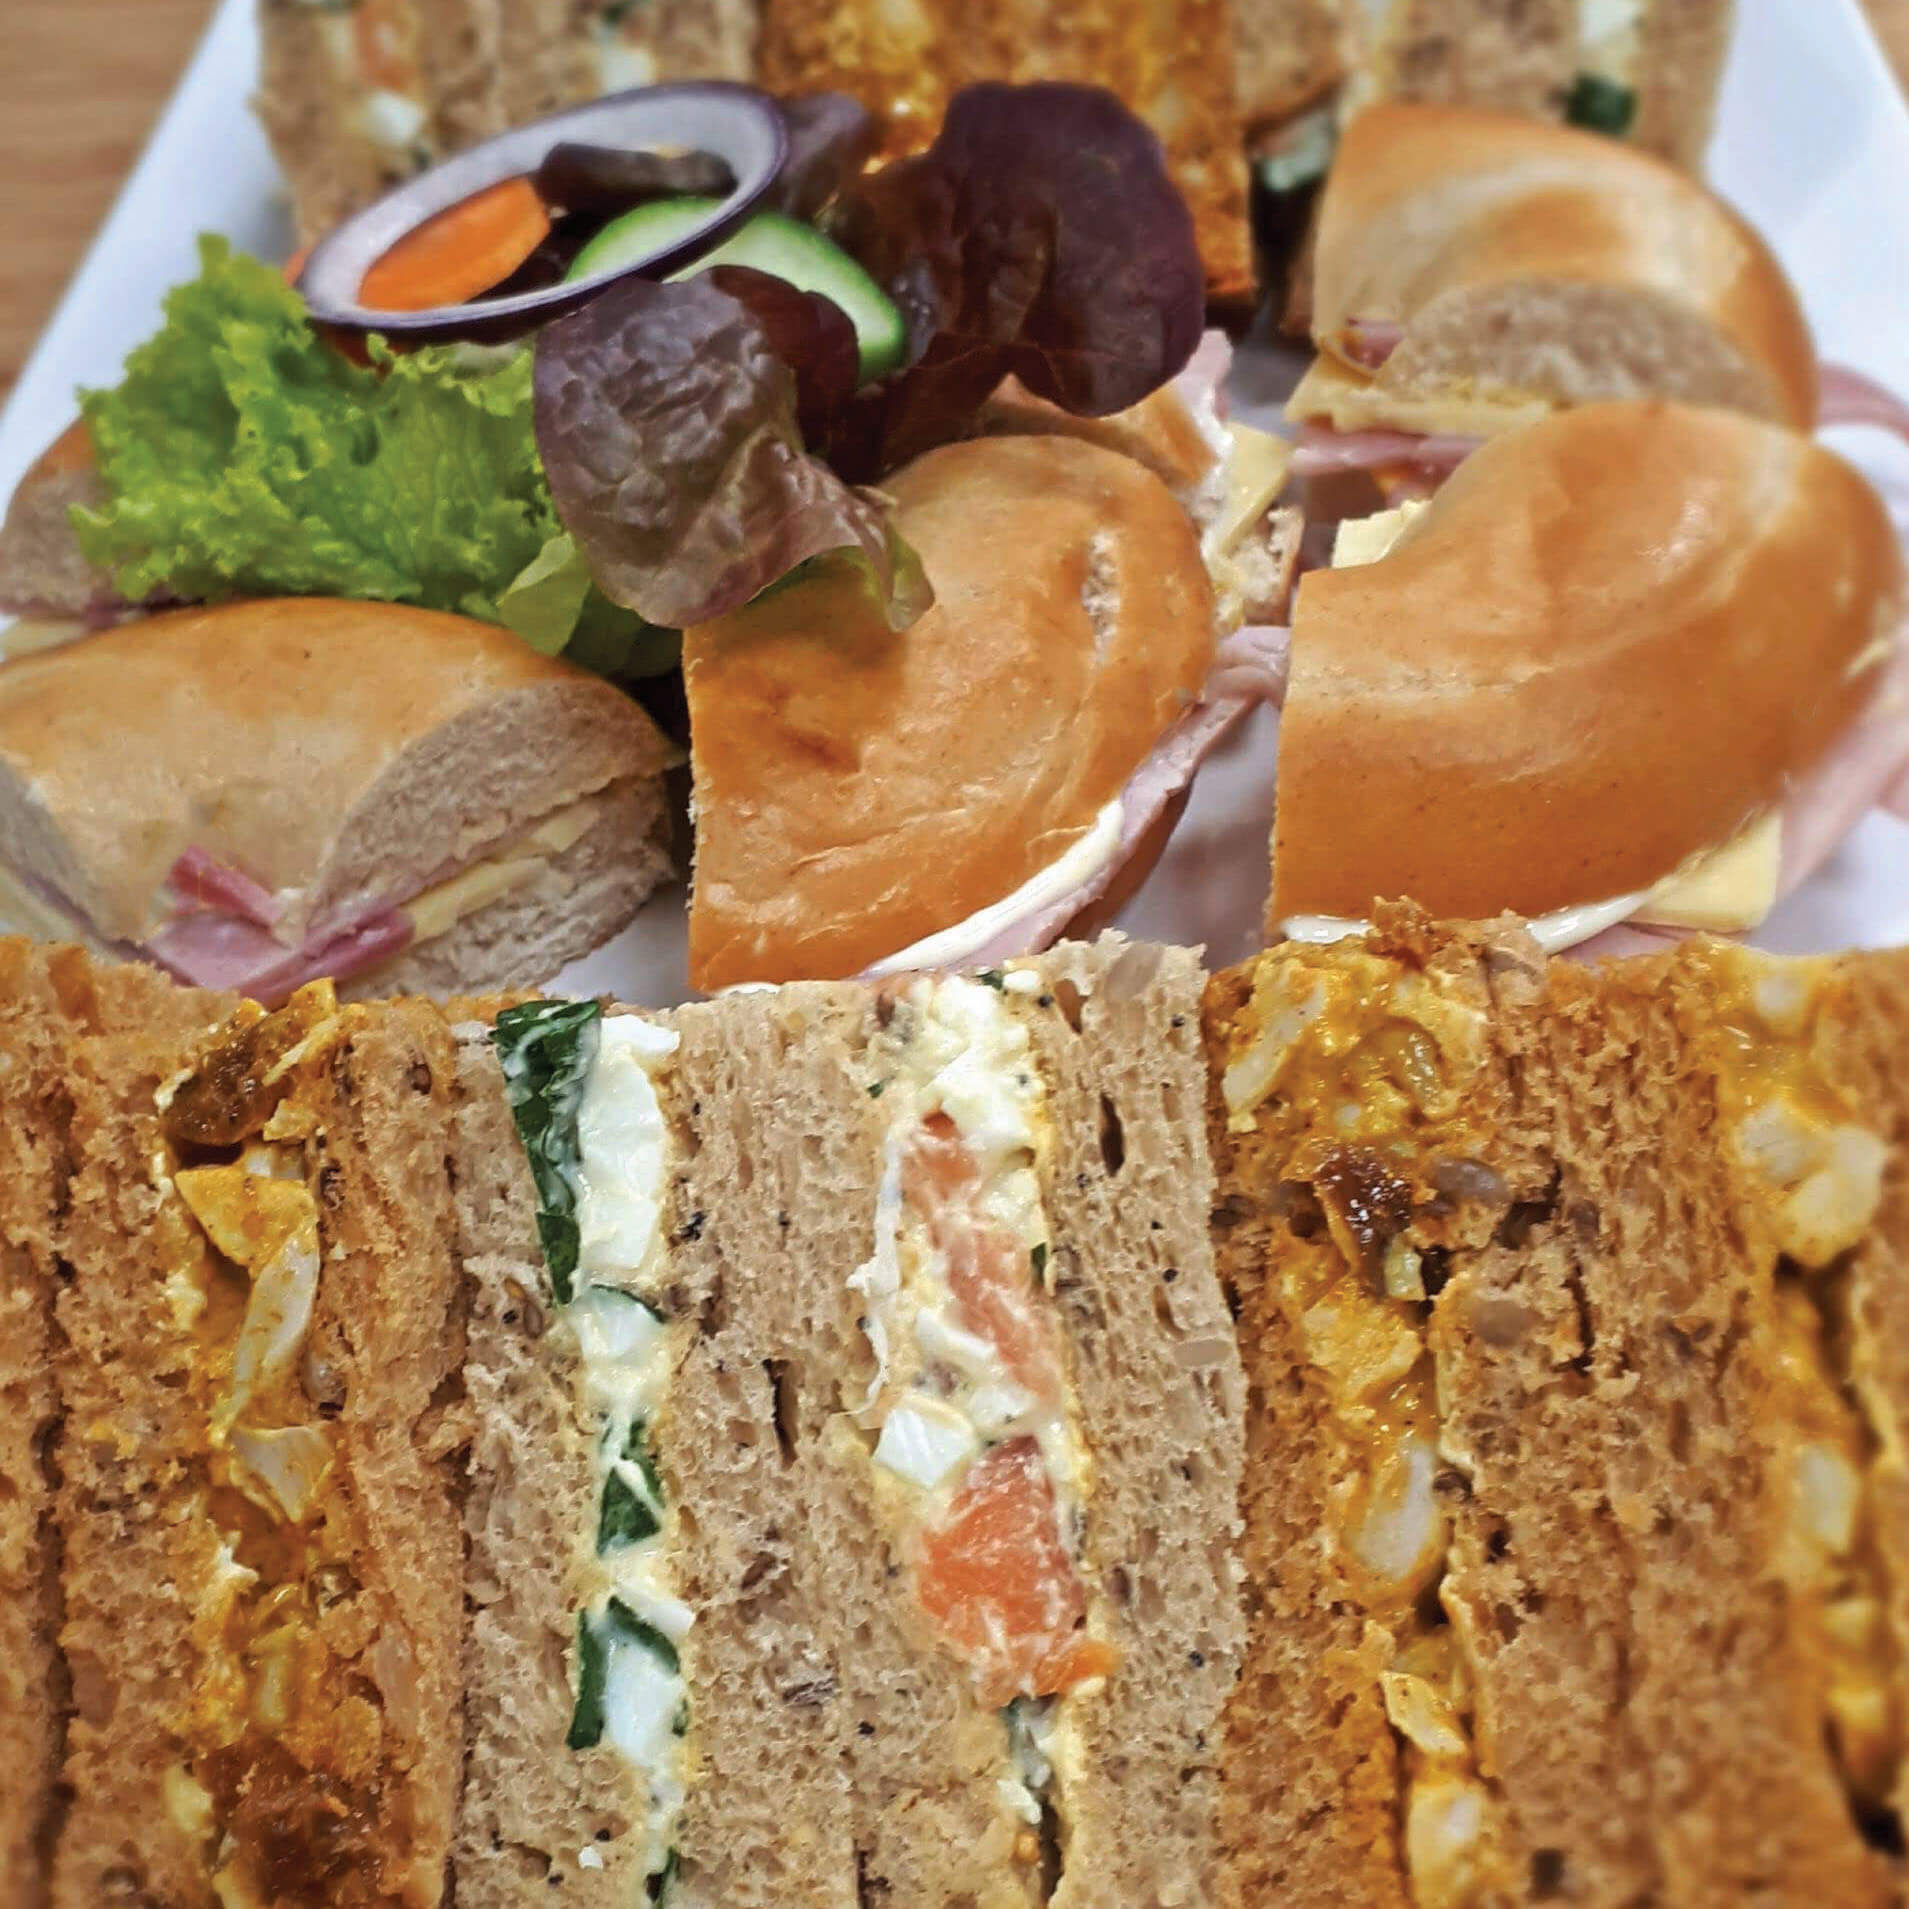 Selection of Sandwiches and Bagels